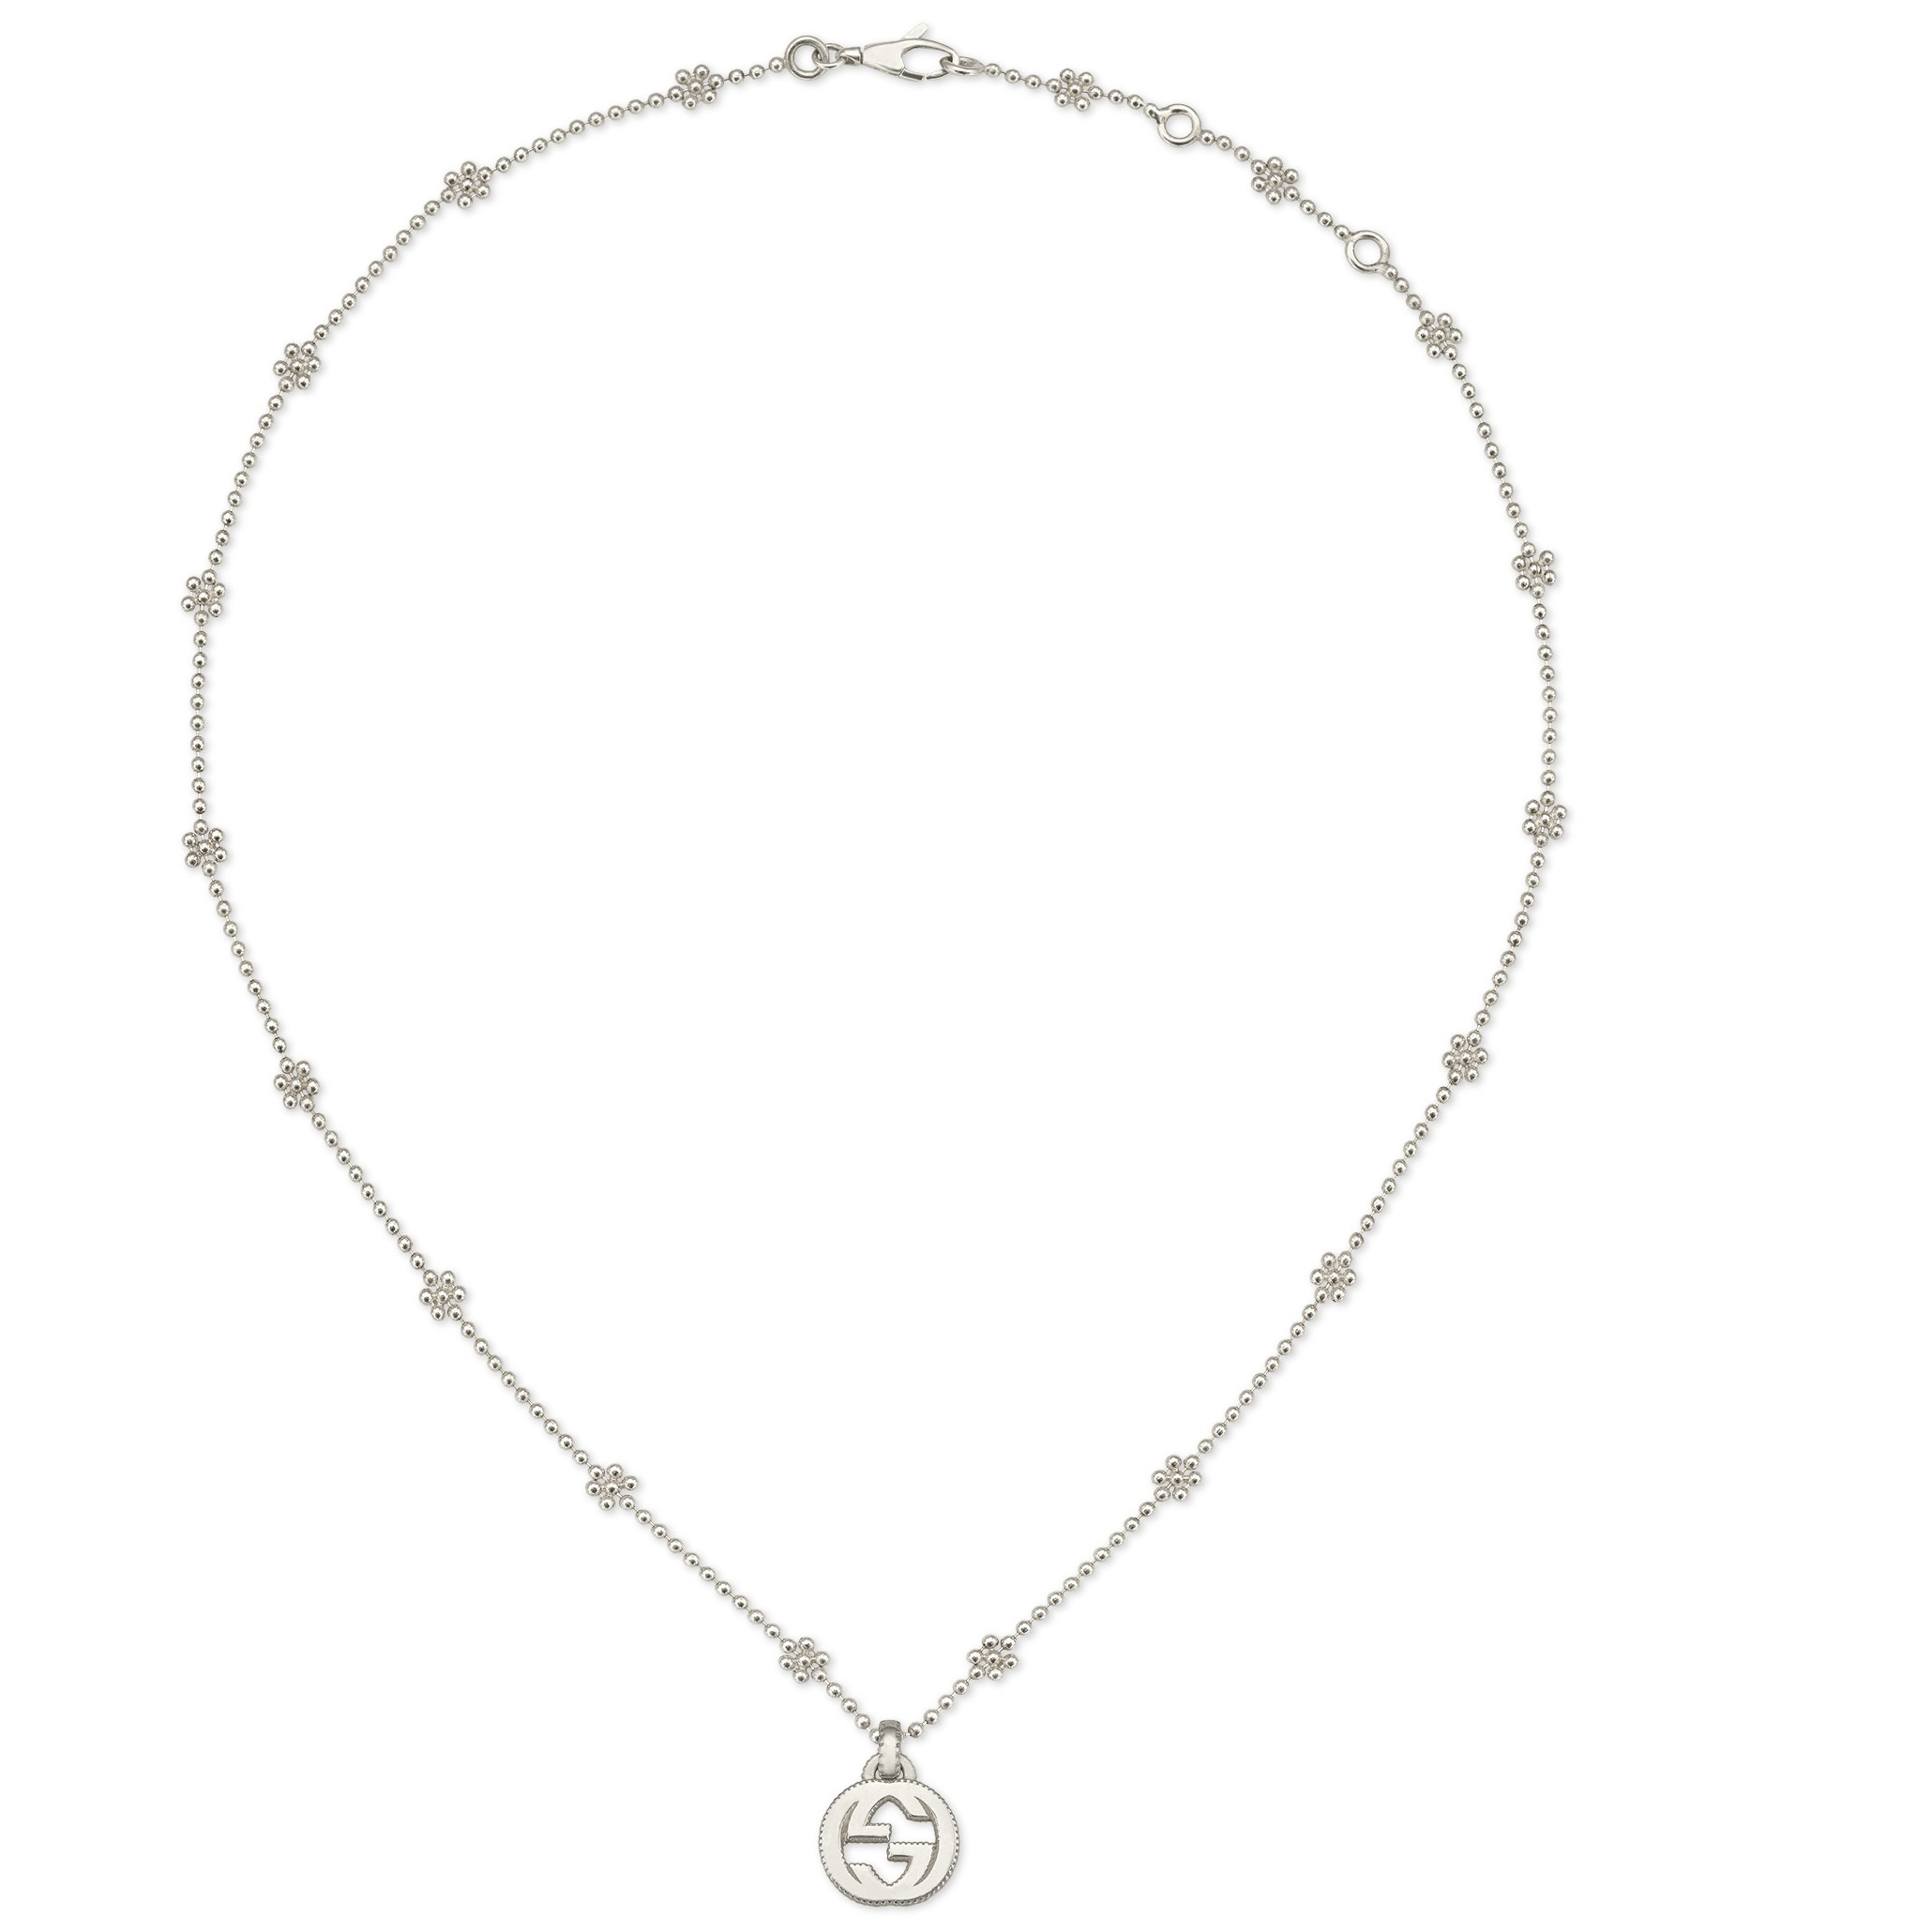 Gucci Interlocking G necklace in silver YBB479221001